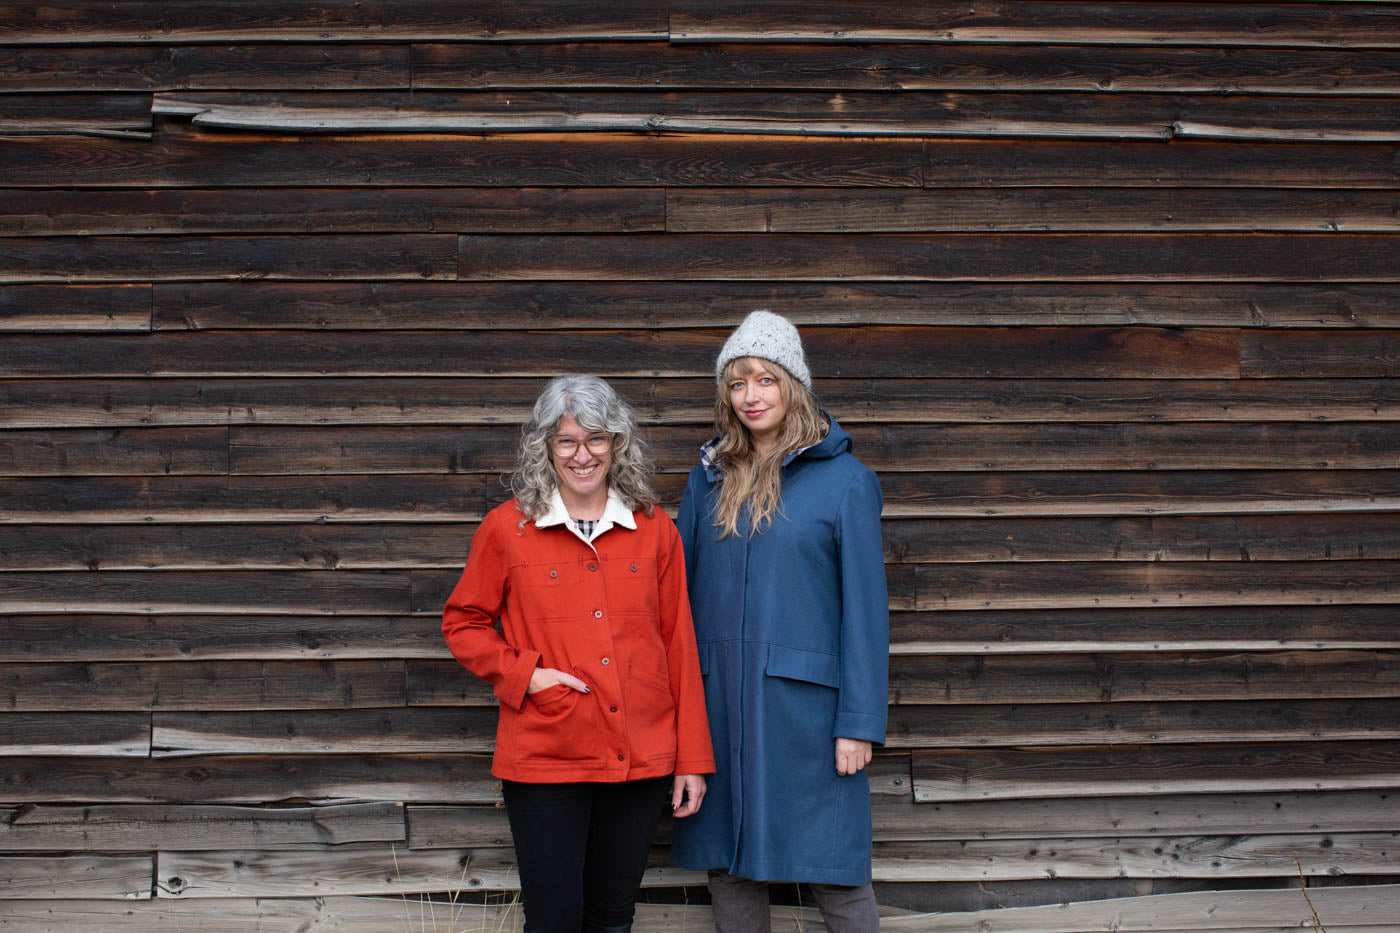 Amber and Jaime stand together outside against a weathered barnwood wall. Jaime wears her vibrant red Thayer Jacket with cream fleece lining showing at the collar. Amber wears her blue wool Hoodie Parka with a hand knit grey hat.